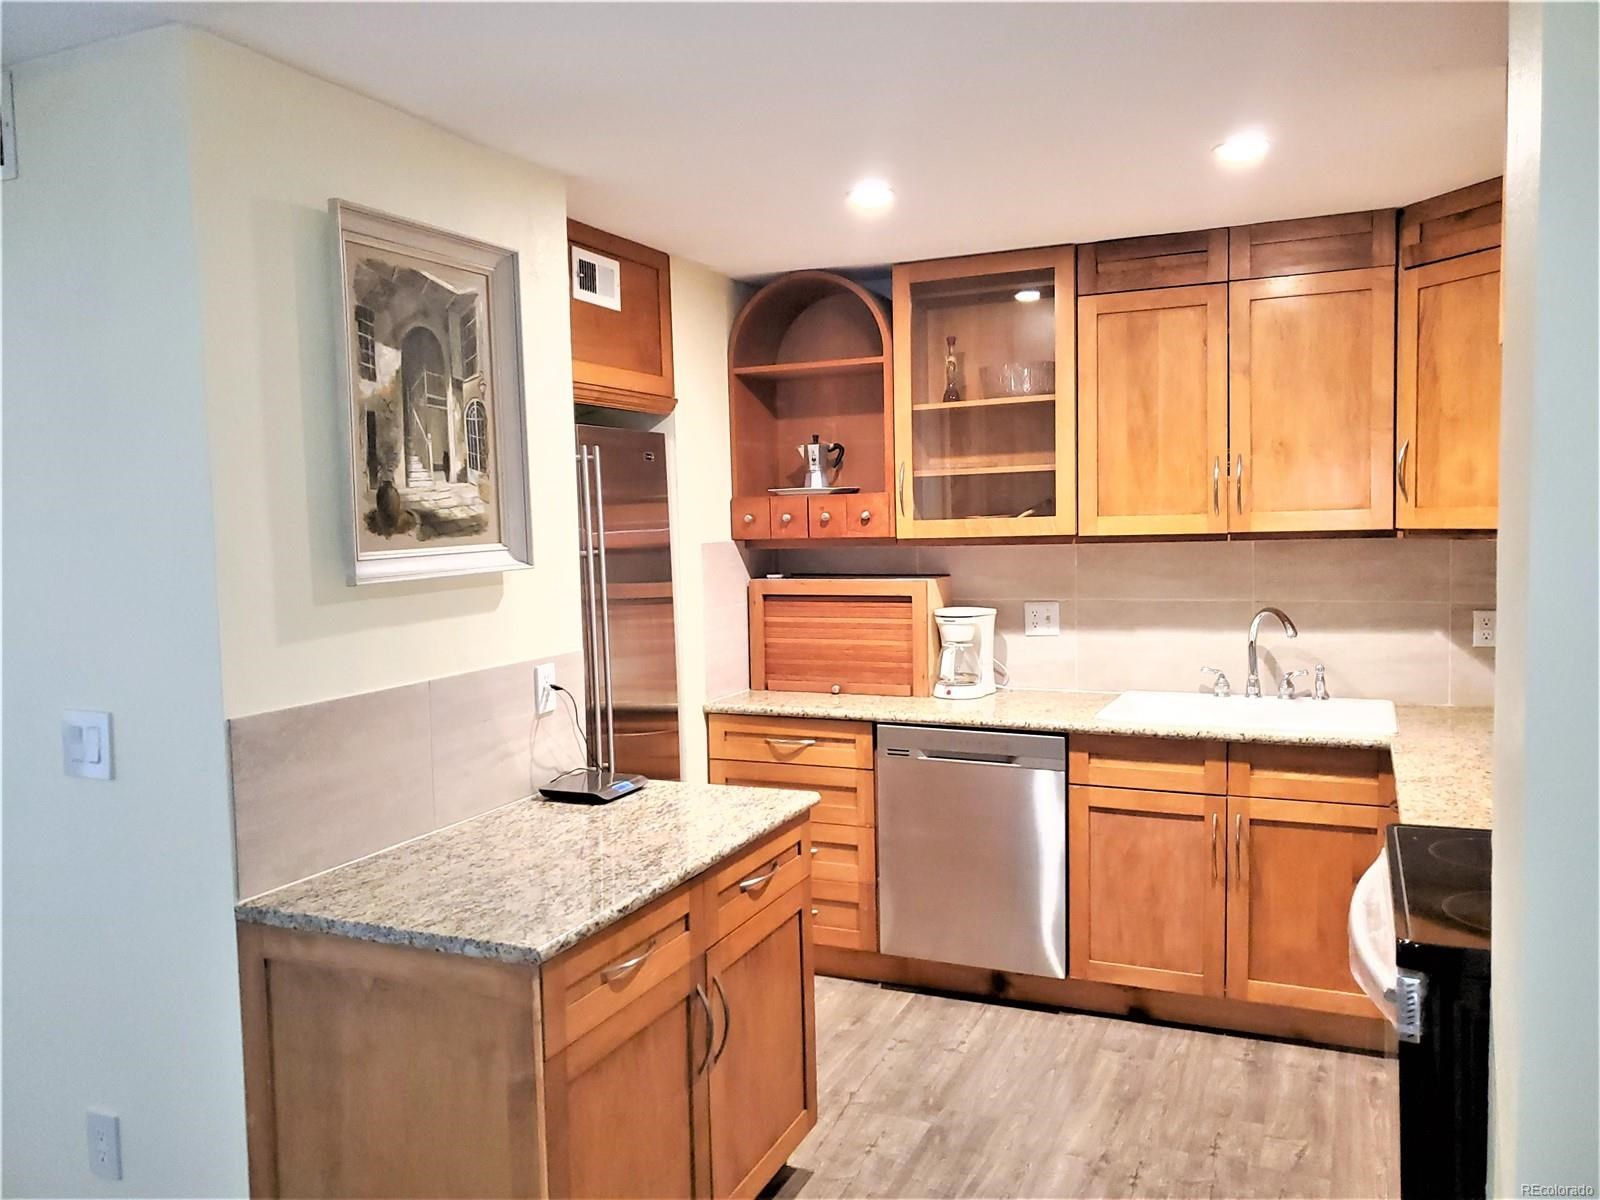 MLS# 6346013 - 2 - 12148 Melody Drive #307, Westminster, CO 80234